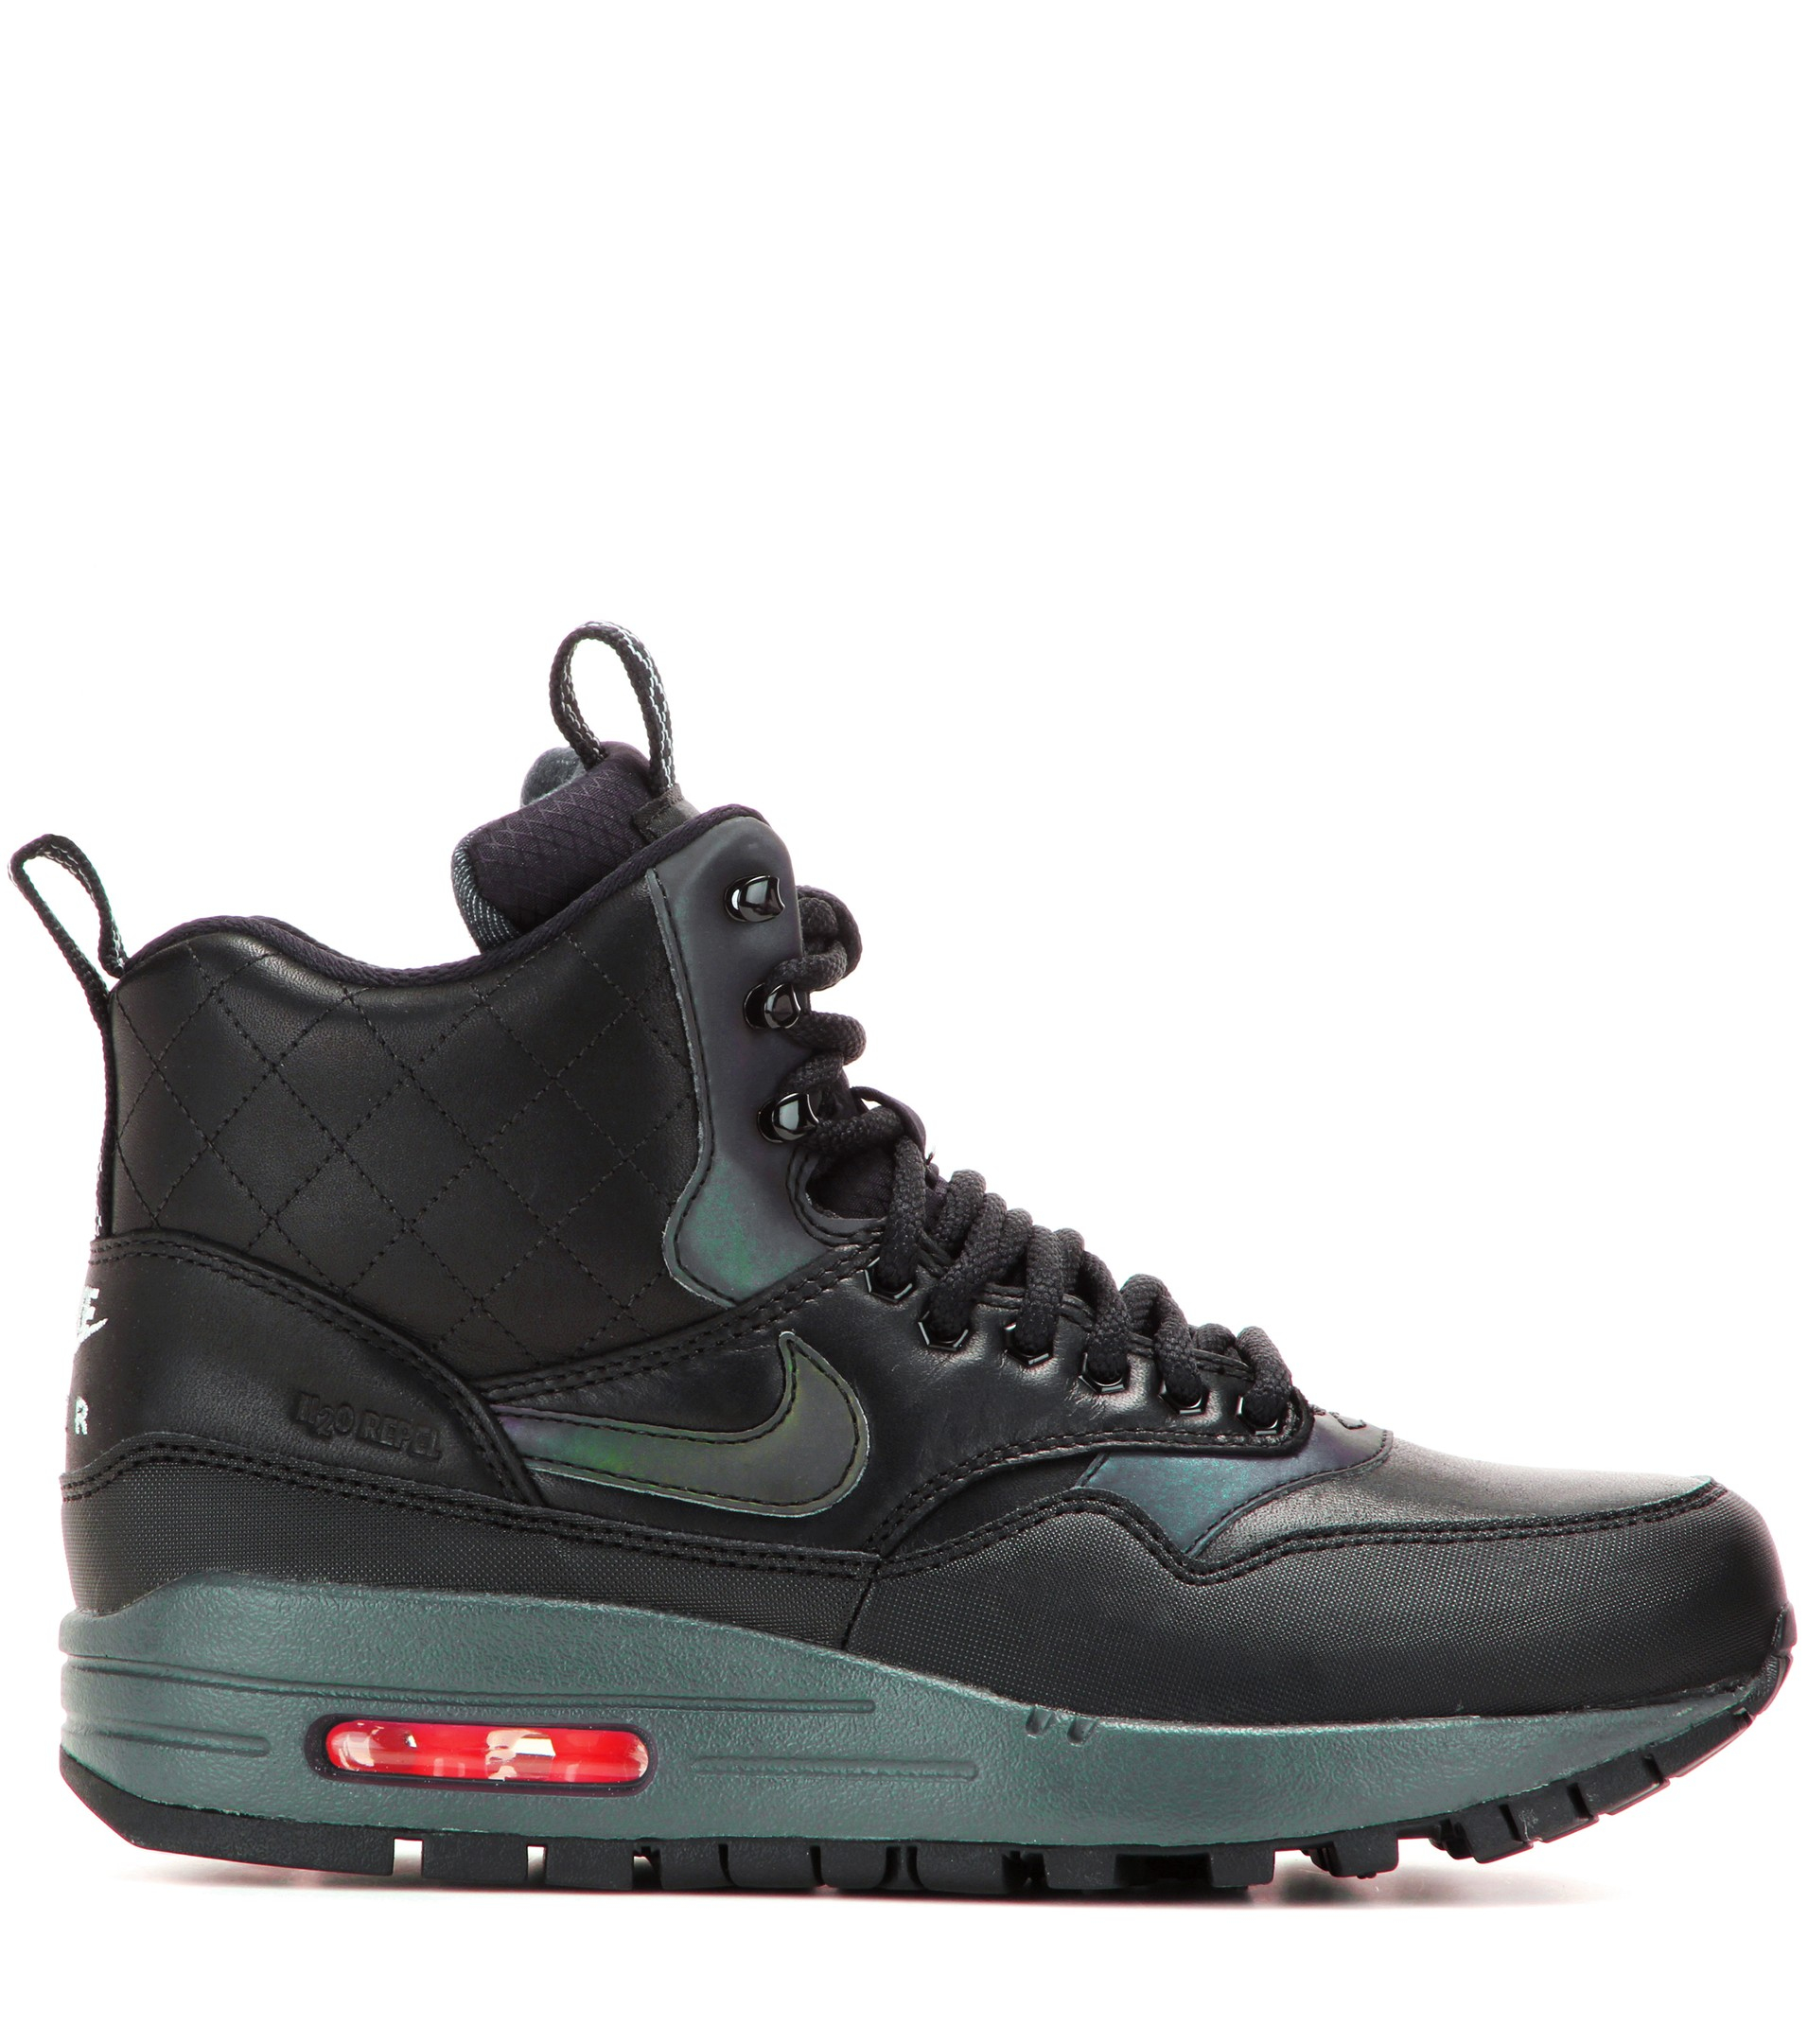 finest selection f7ba8 48b1f Nike Air Max 1 Mid Sneaker Boots in Black - Lyst